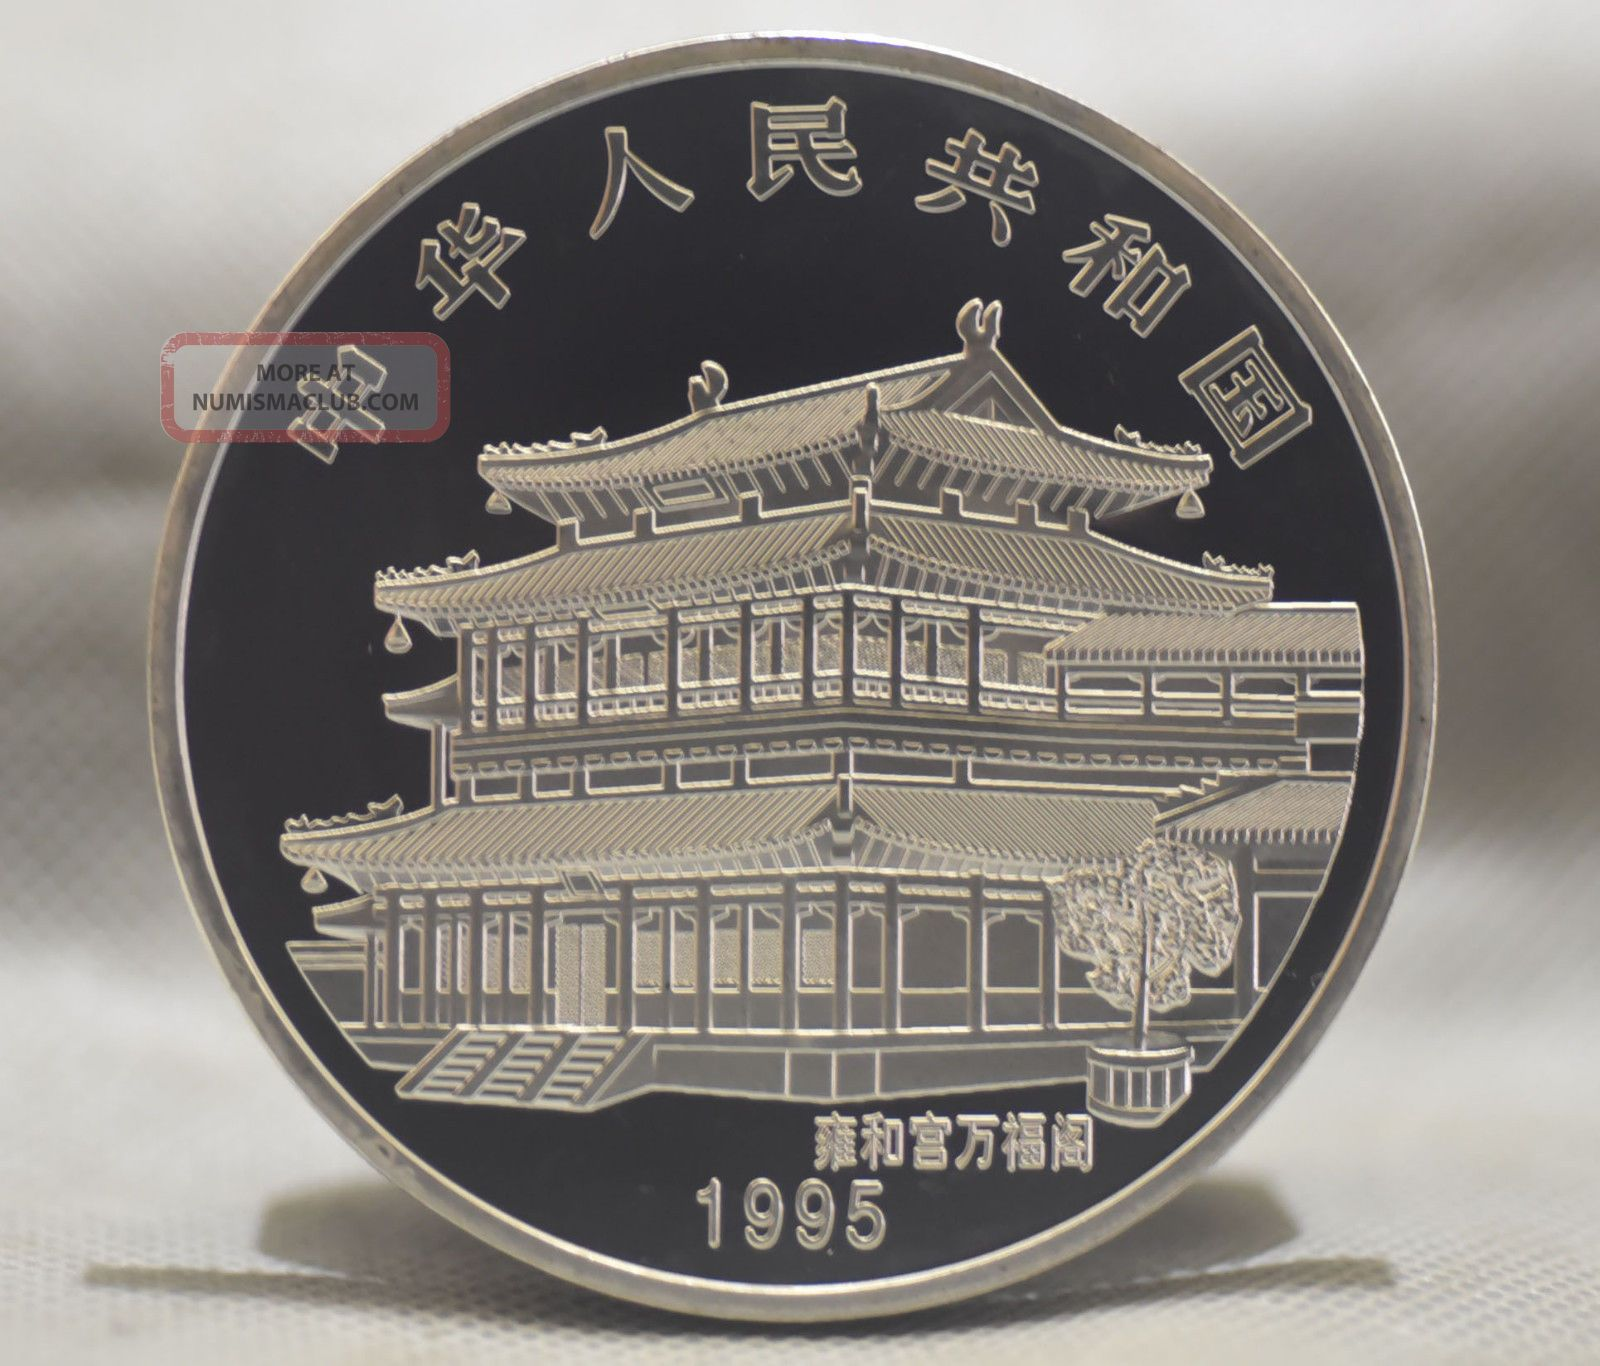 99 99 Chinese 1995 Zodiac 5oz Silver Coin Year Of The Pig